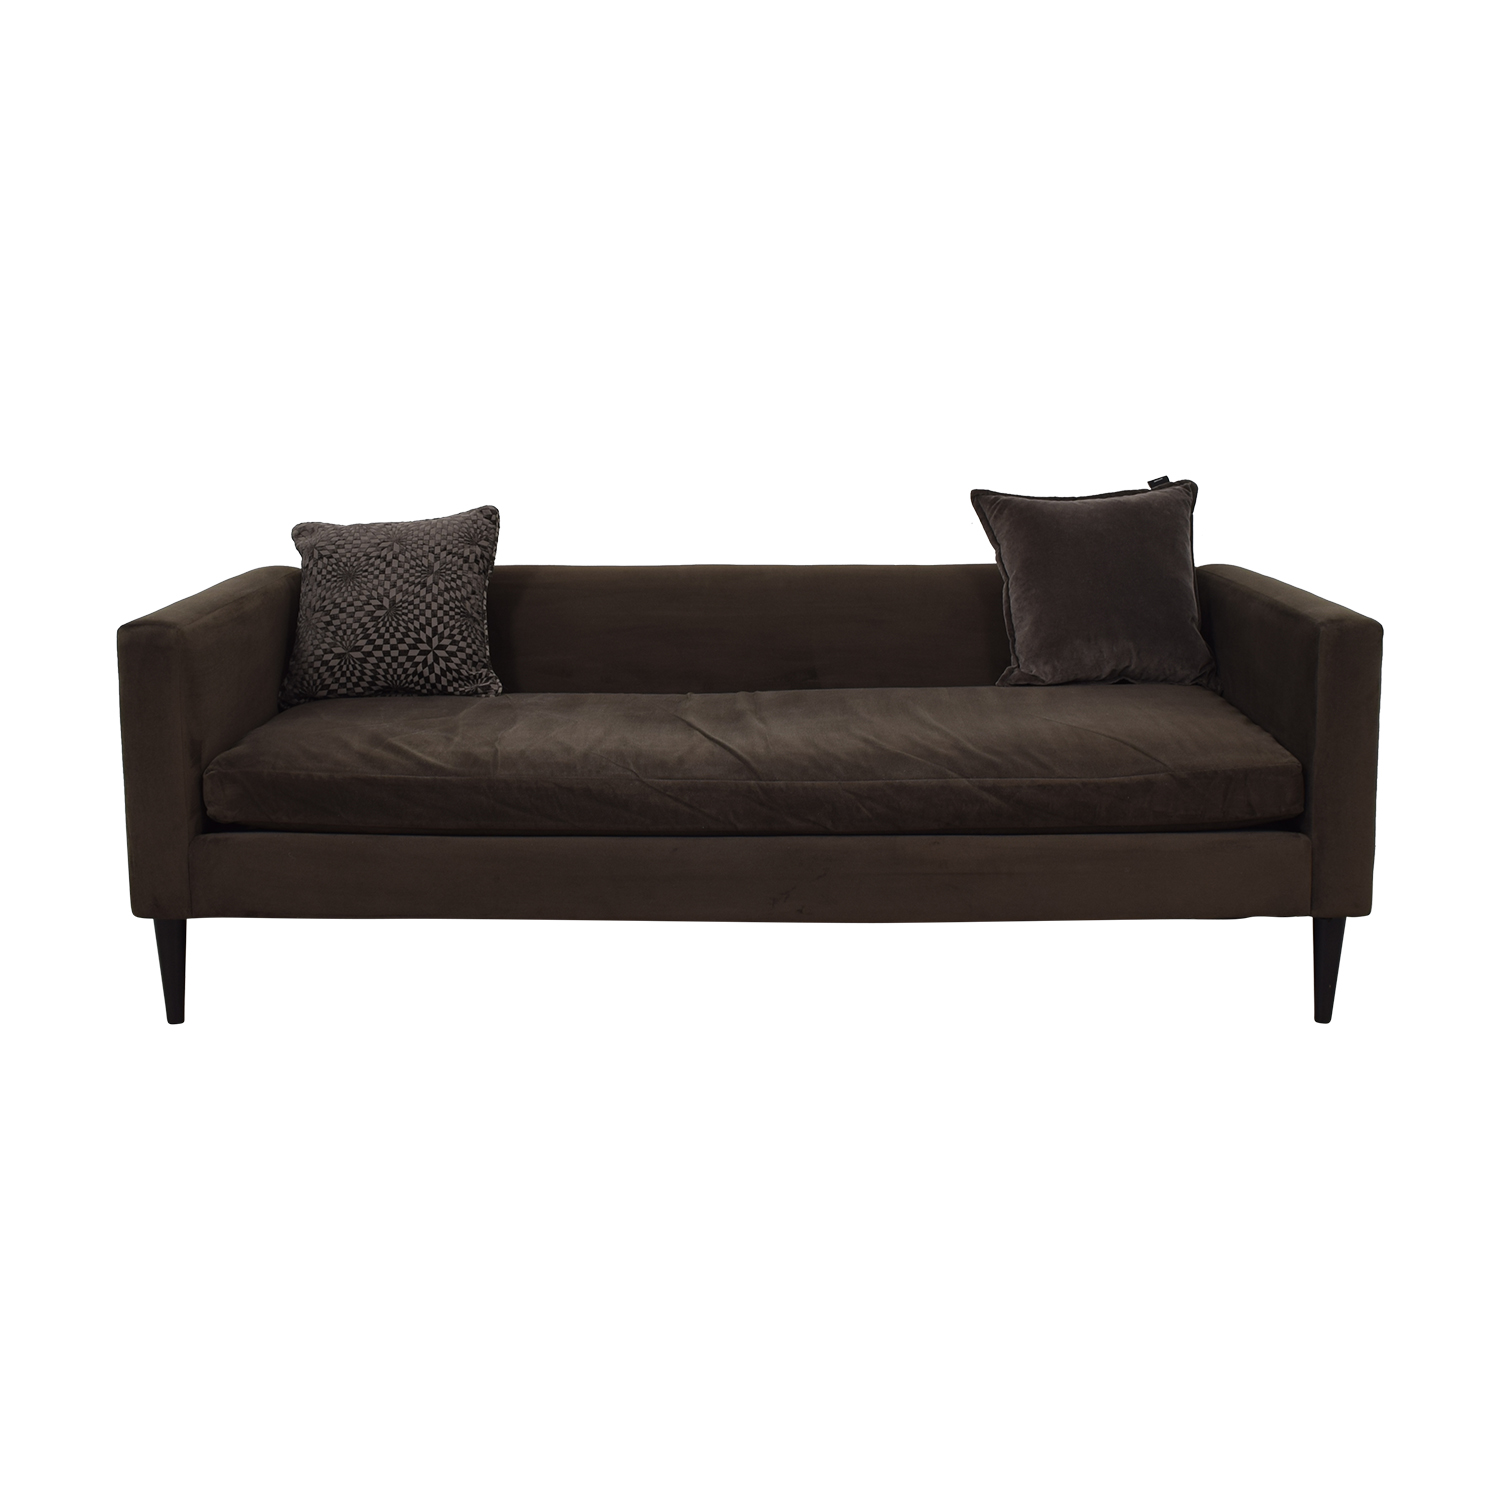 CB2 CB2 Brown Sofa with Two Throw Pillows nj